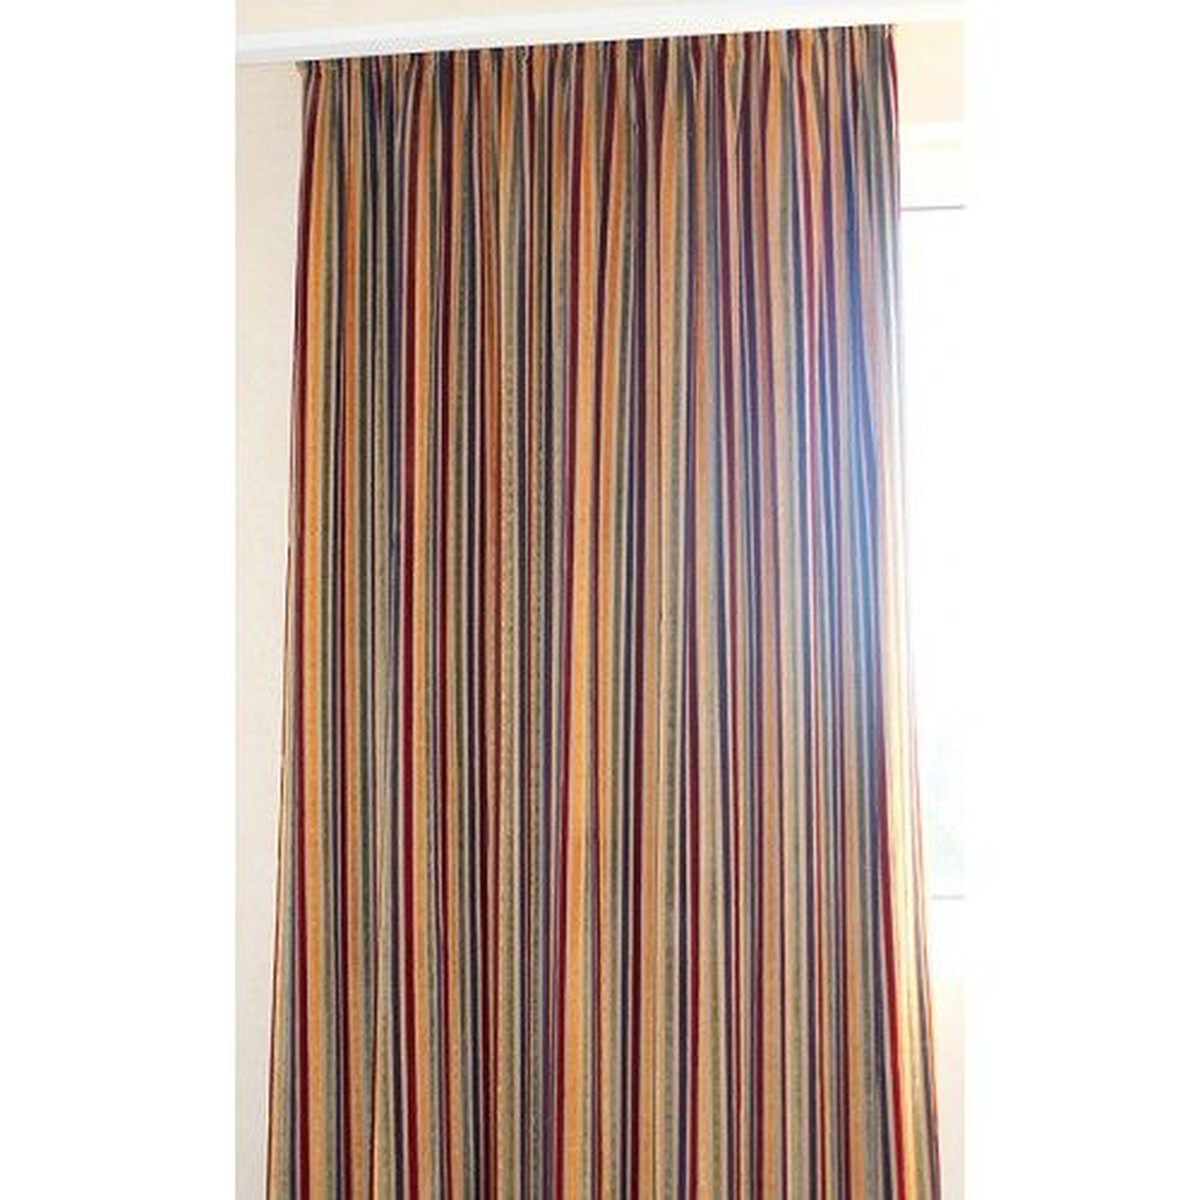 Second hand hotel curtains uk curtain menzilperde net for Hotel drapes for sale